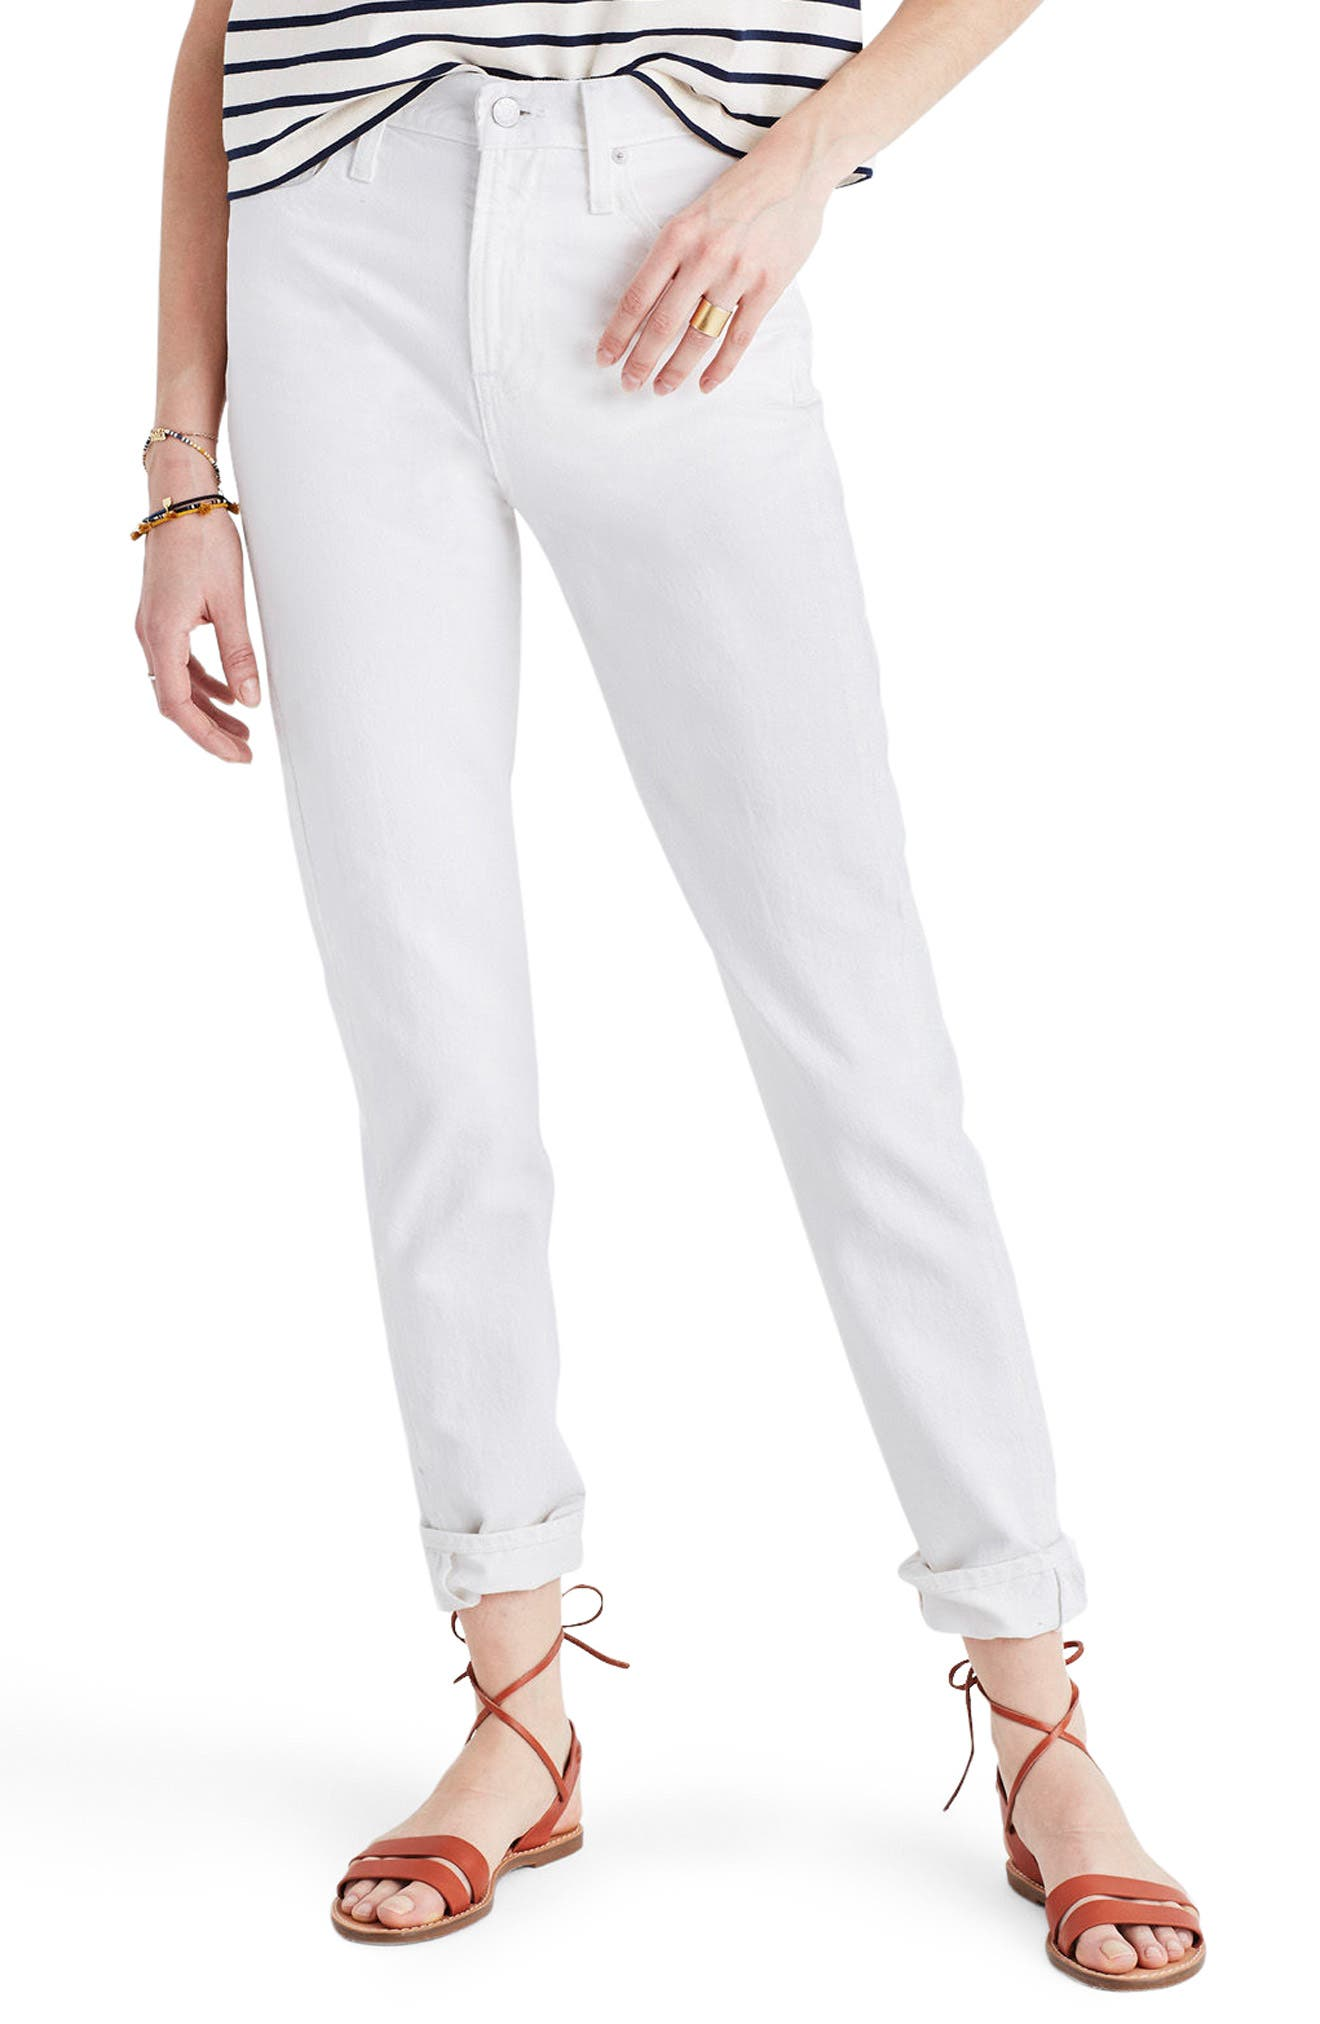 Main Image - Madewell Perfect Summer High Waist Ankle Jeans (Tile White)